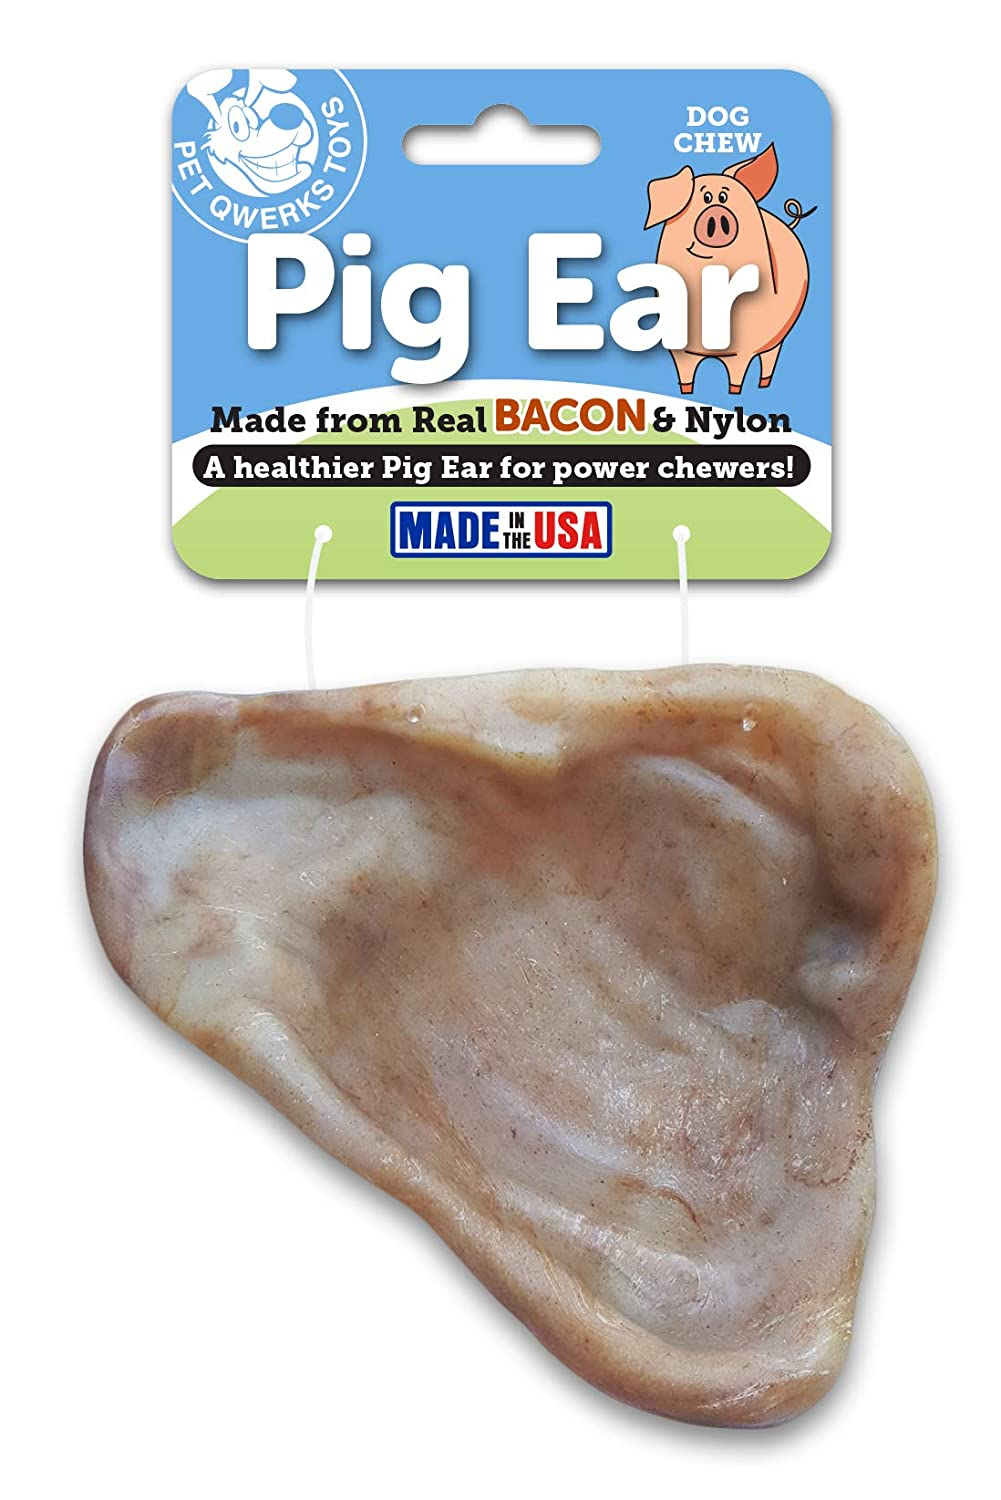 Pet Qwerks Pig Ear with Real Bacon Dog Chew Toy, Made in USA